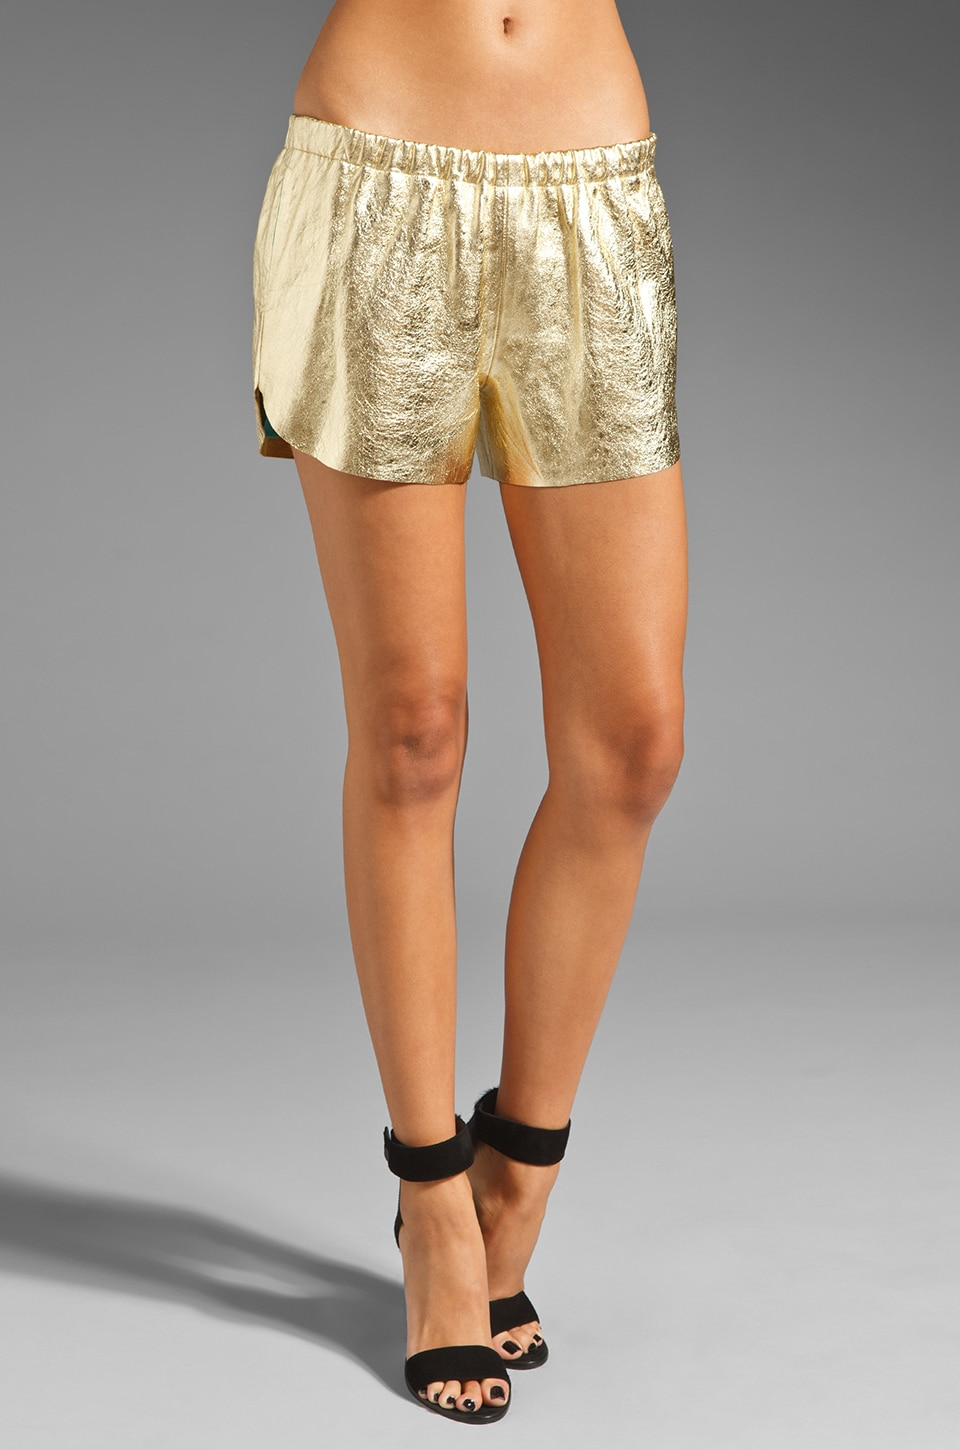 Clover Canyon Leather Short in Metallic Gold